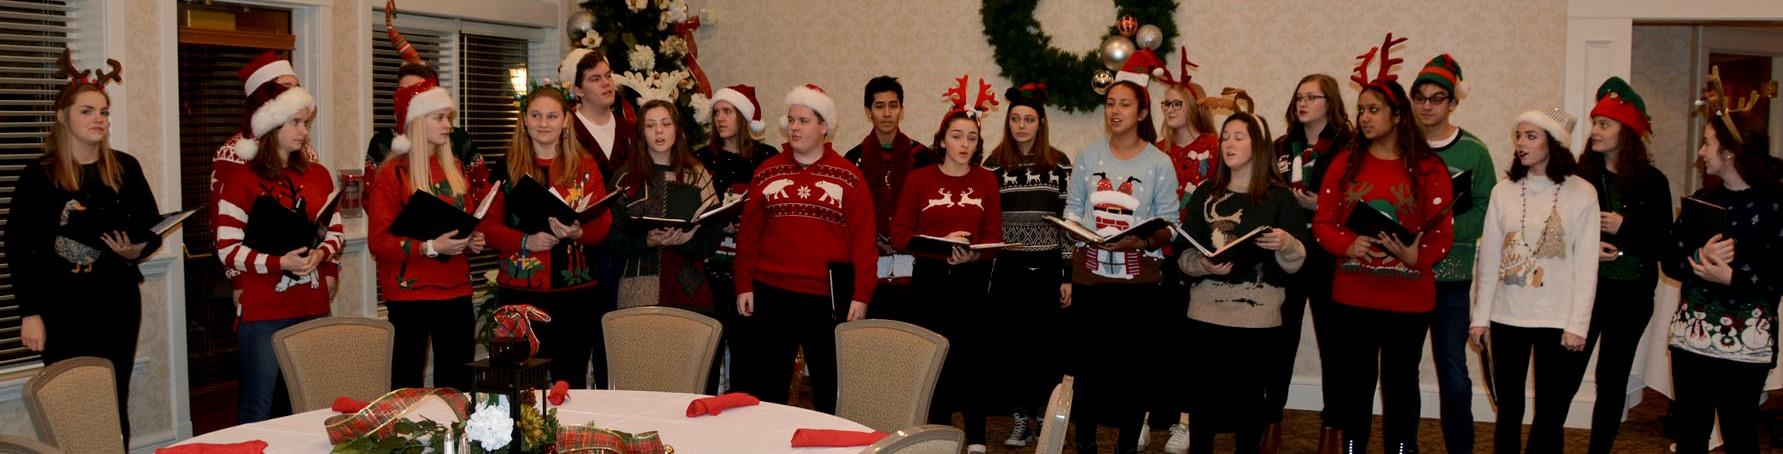 EPHS Chamber Choir Provided Entertainment